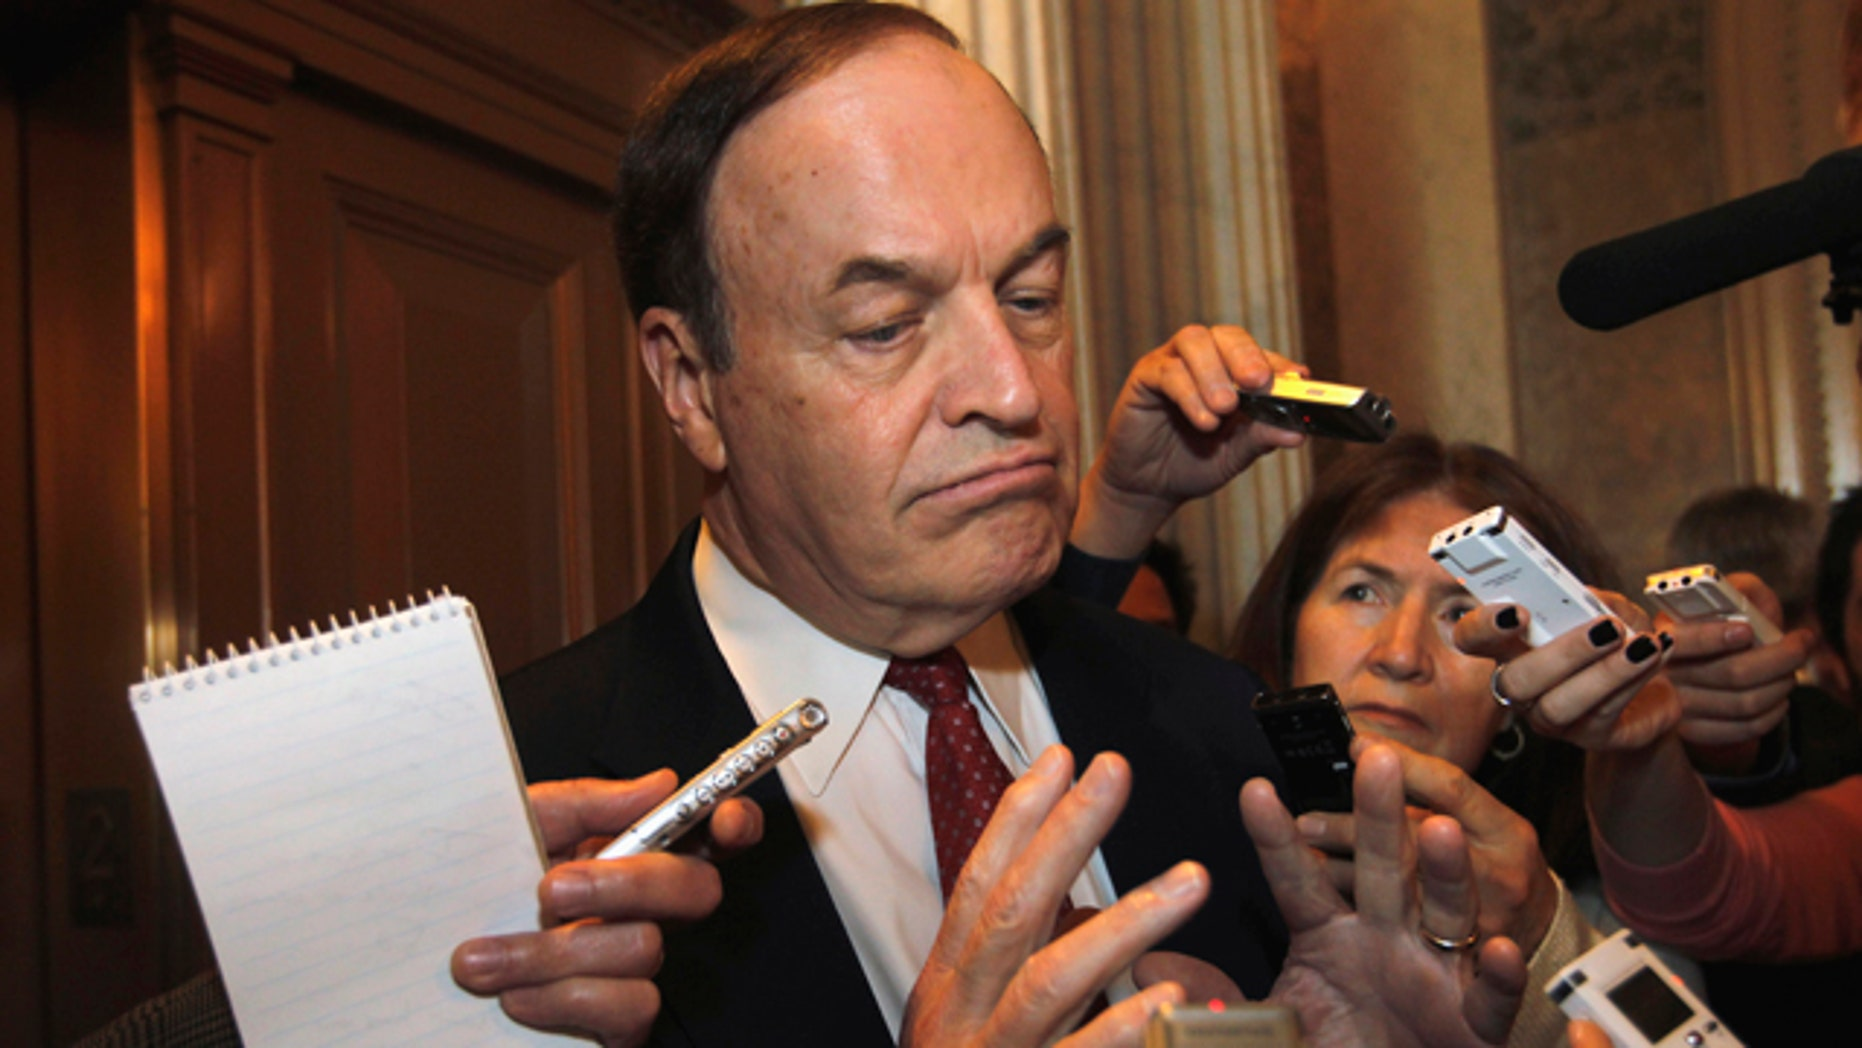 April 28: The Senate Banking Committee's ranking Republican Sen. Richard Shelby, R-Ala., talks to reporters on Capitol Hill in Washington.